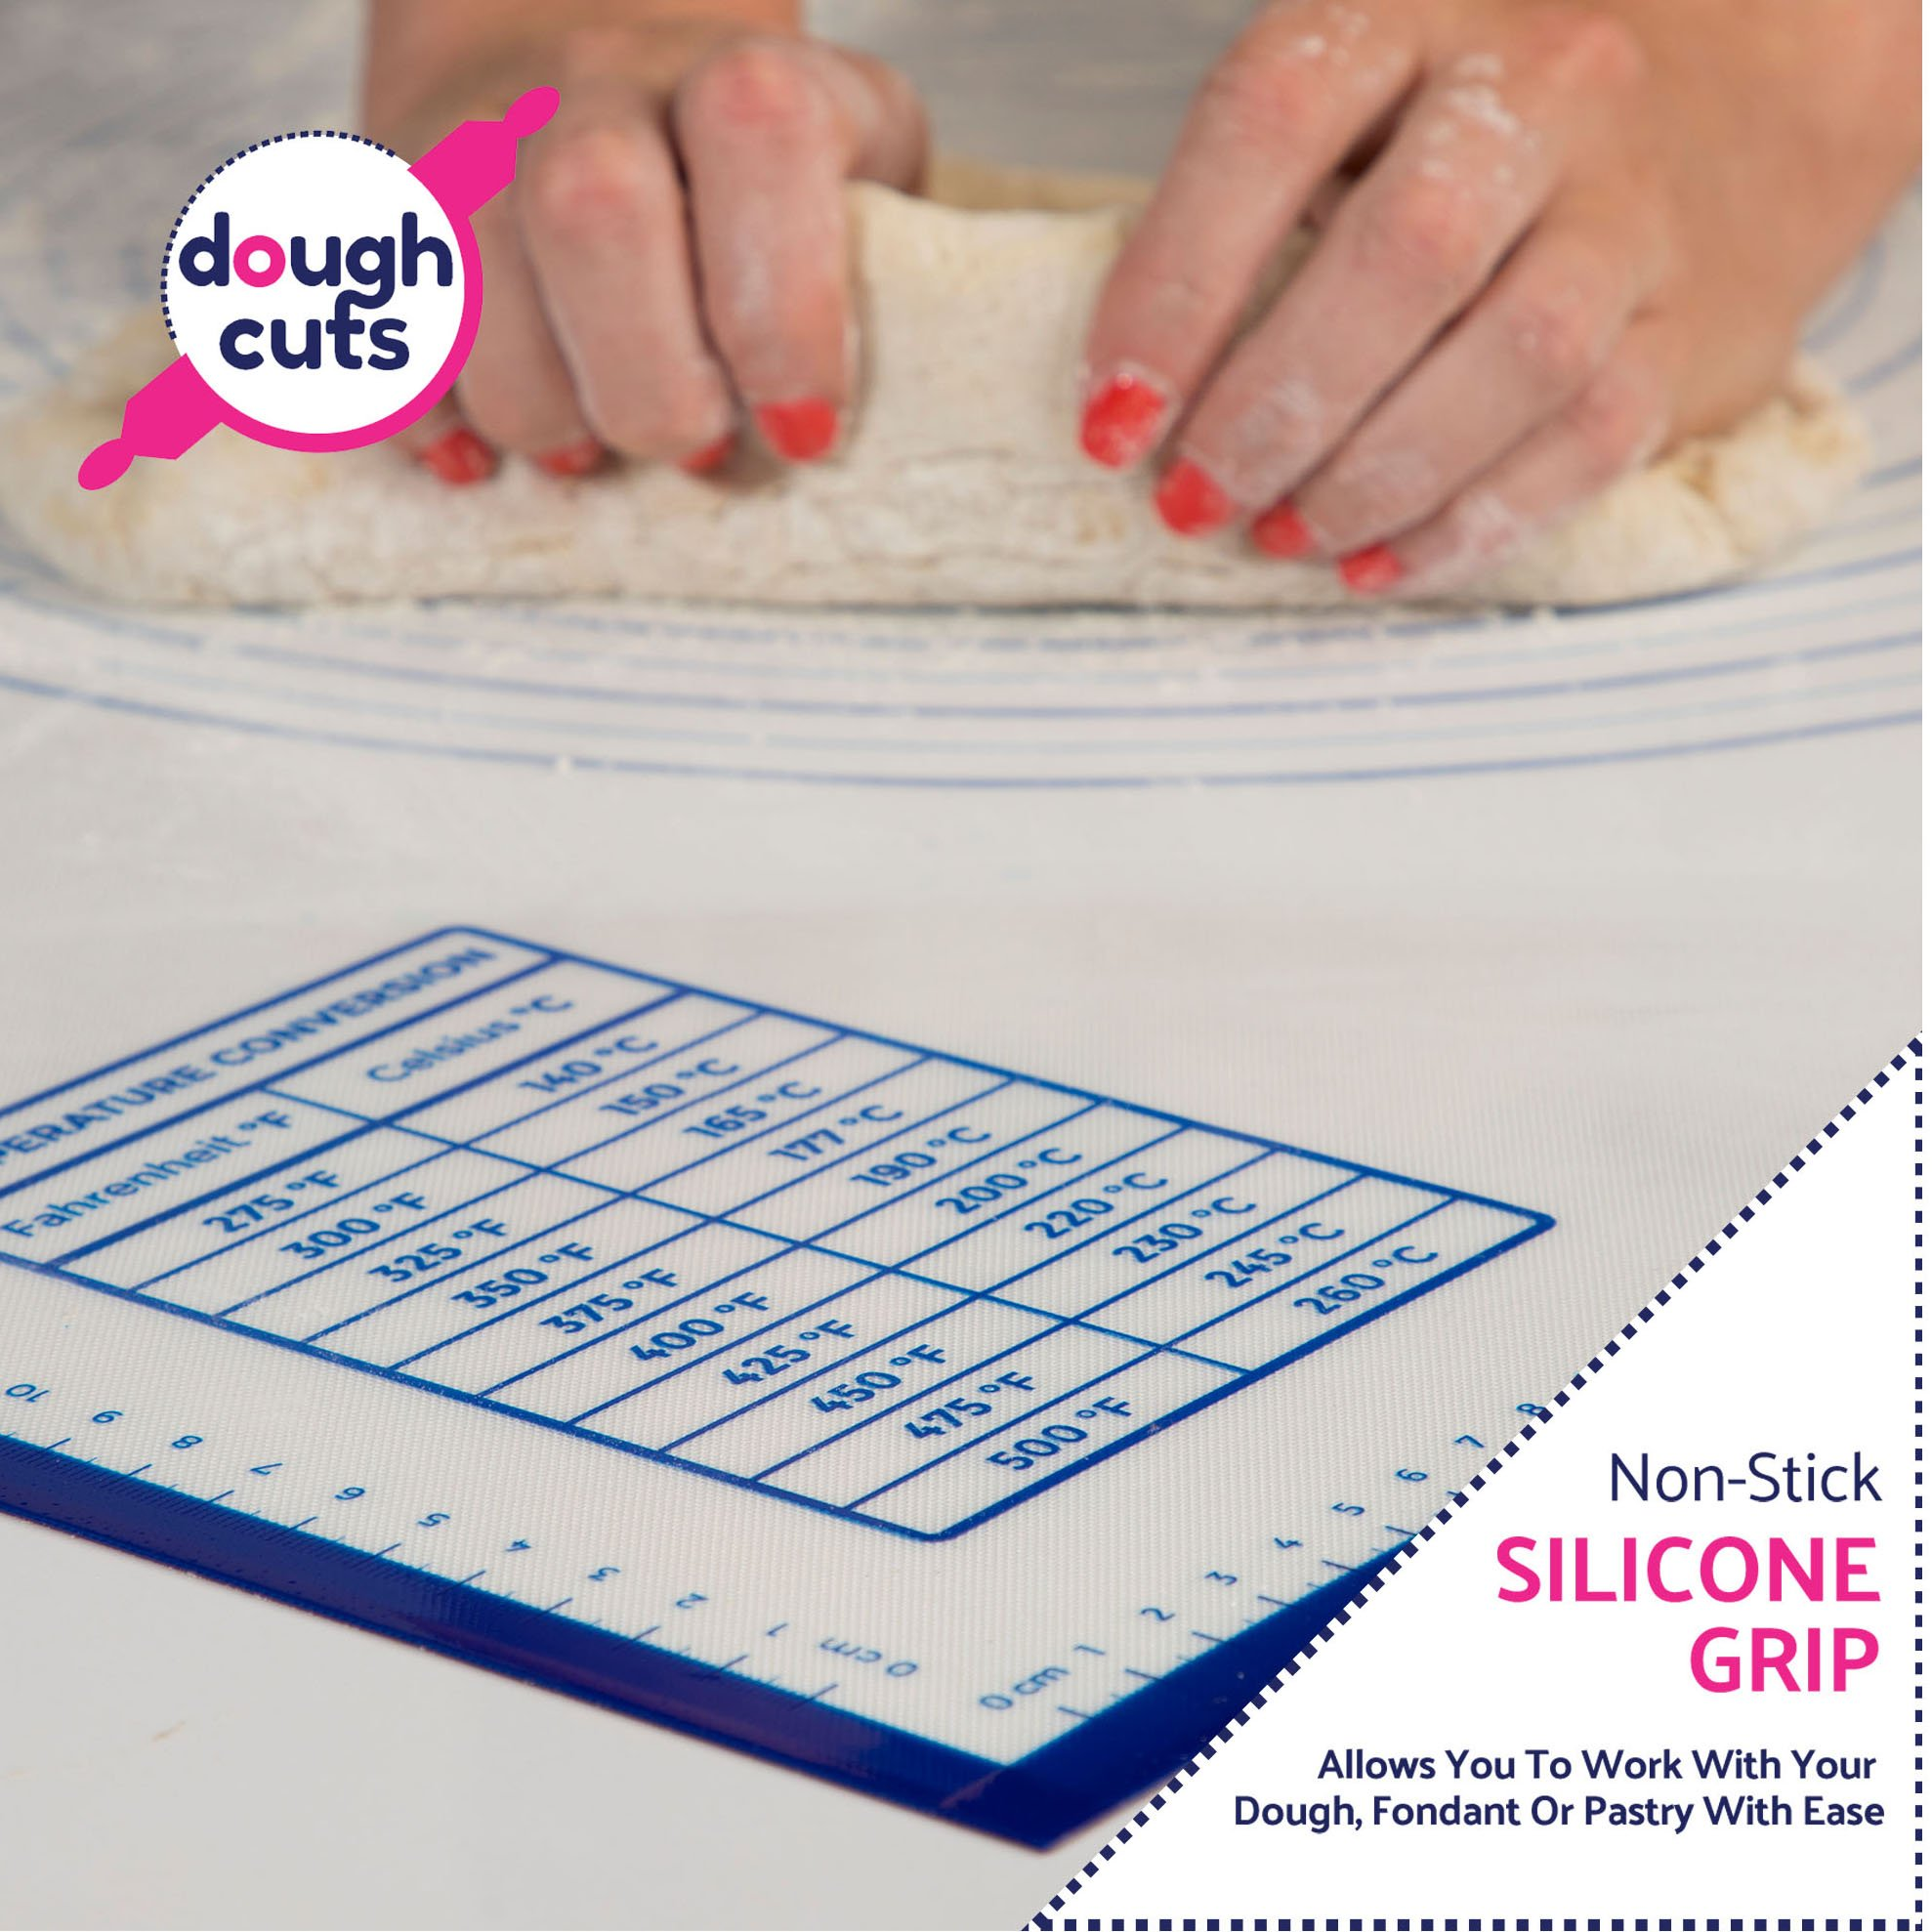 Extra Large Silicone Pastry Mat - Non Stick Reusable XXL 32'' x 24'' Cooking Sheet Liner with Countertop Non-Slip Grip and Heat Resistant - Non-Toxic, BPA Free Jumbo Pastry Mat for Rolling Dough Cookies by dough cuts (Image #4)